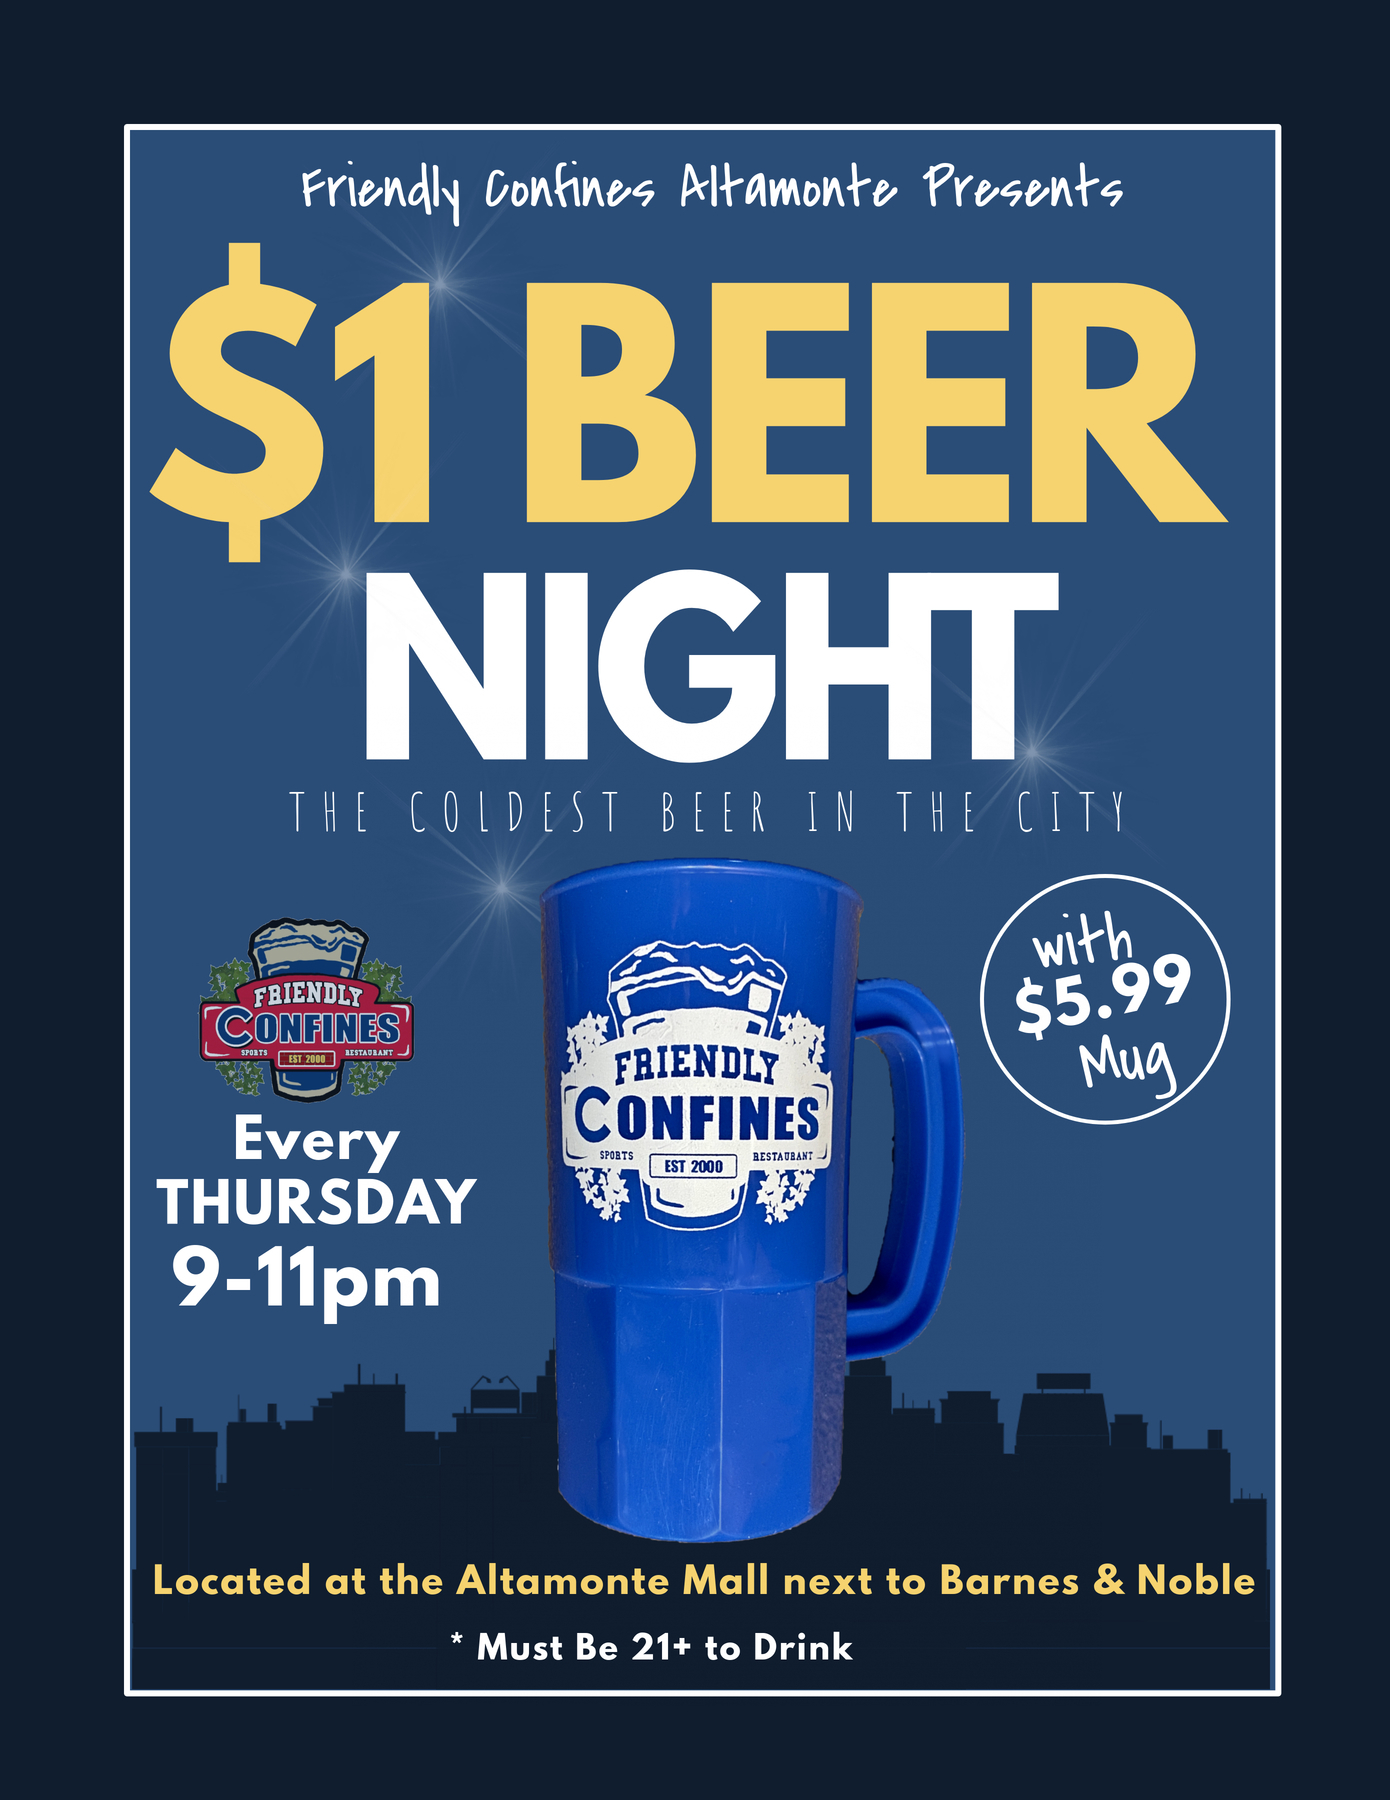 $1 Beer special Thursdays at Altamonte My Friendly Confines Restaurant and Bar